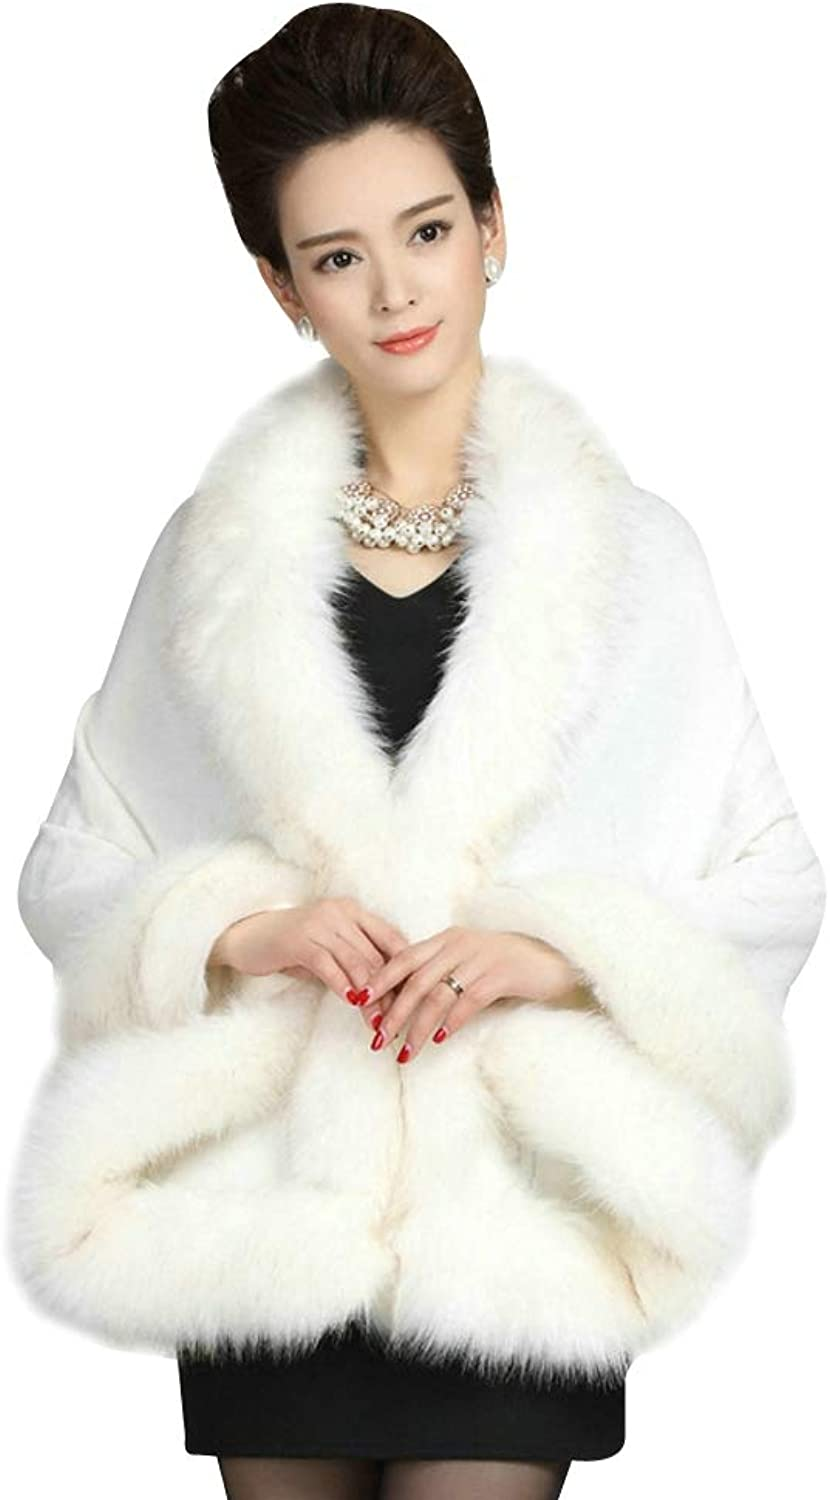 Elfjoy Luxury Bridal Faux Fur Cashmere Wool Shawl Cloak Cape Wedding Dress Party Coat for Winter (WhiteA)